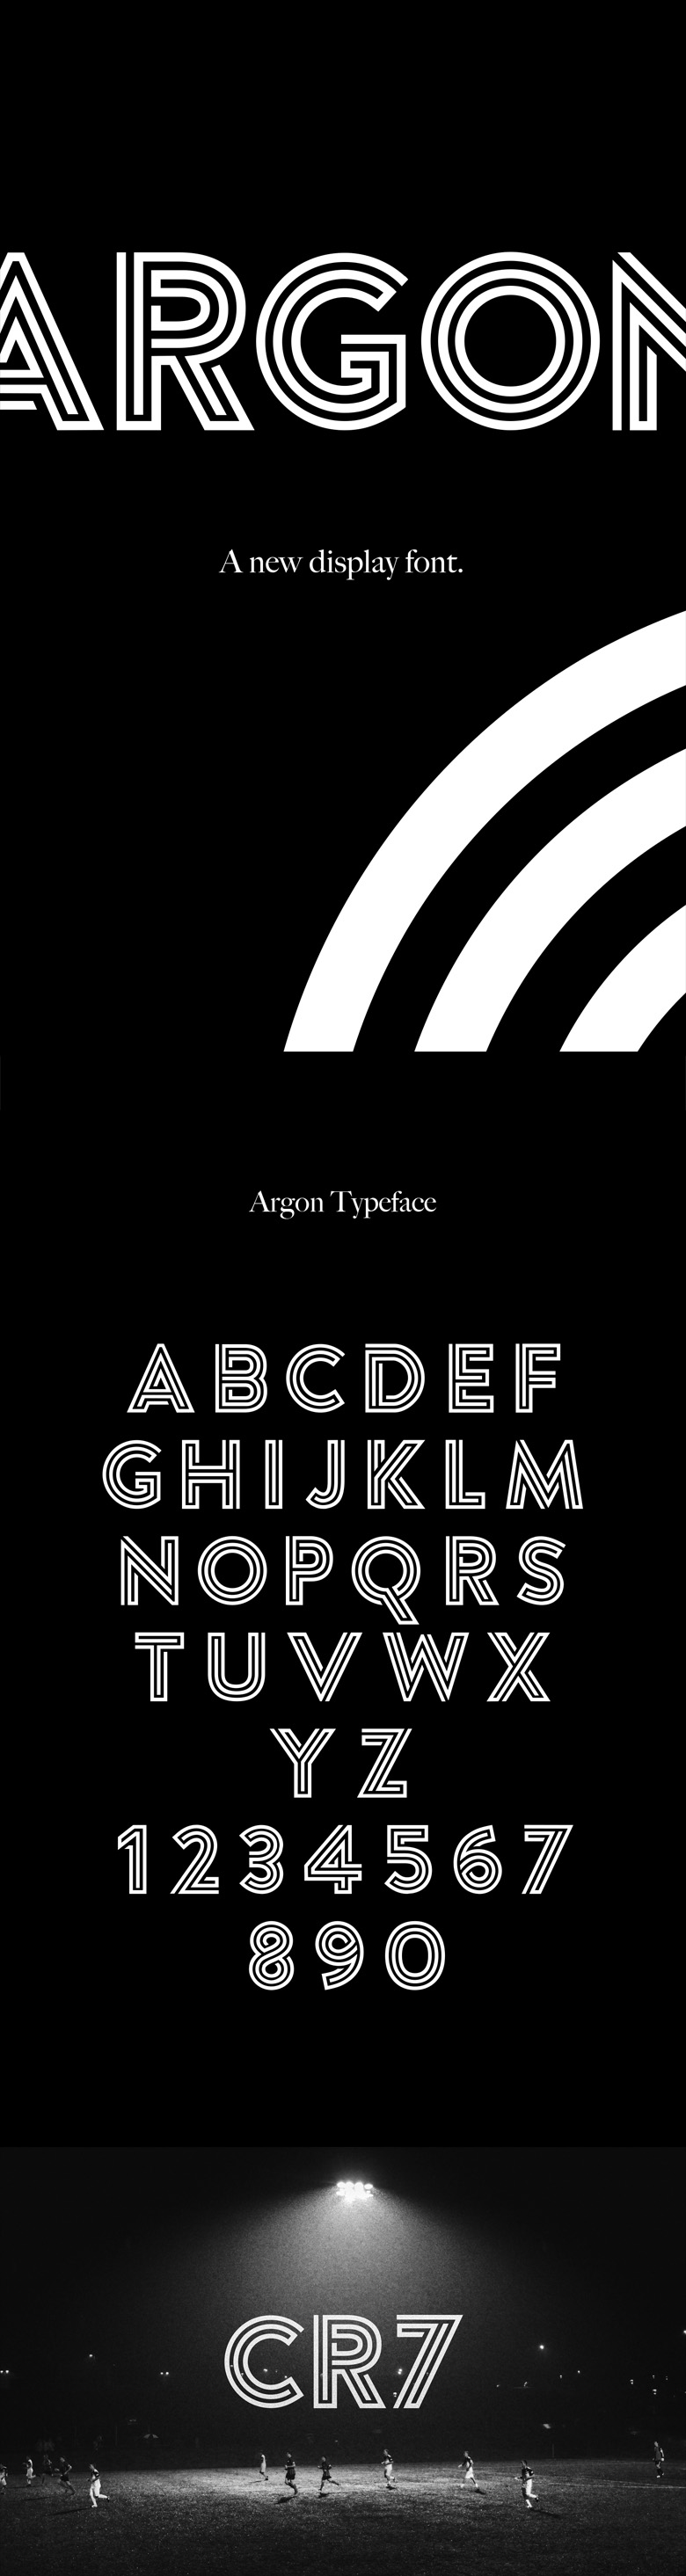 Best Free Fonts - Argon